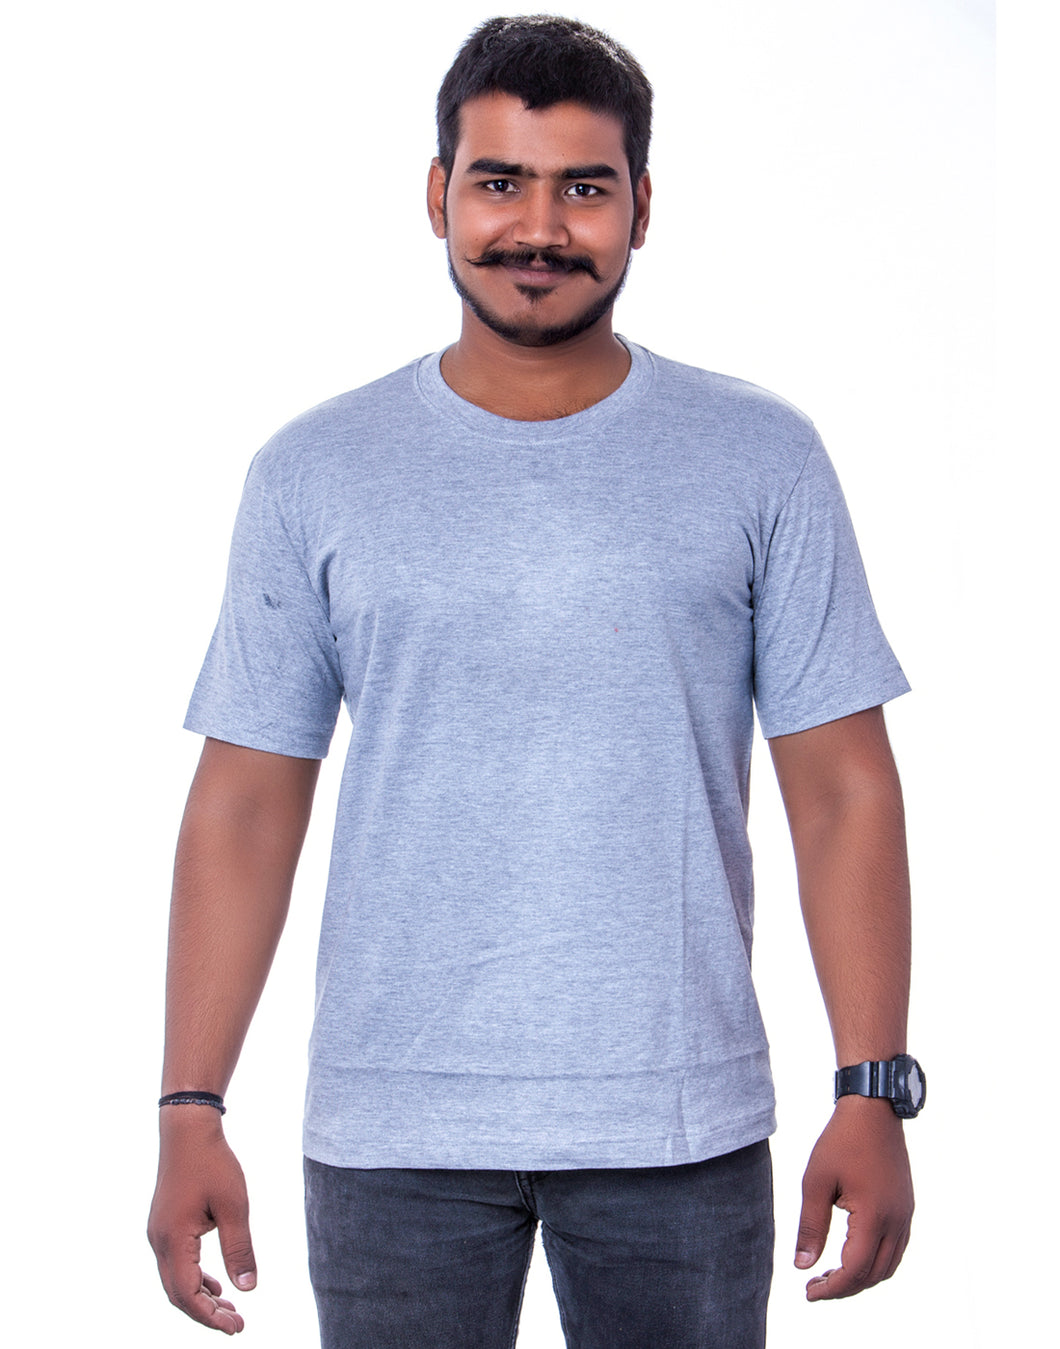 100% Cotton Grey melange Round Neck T-Shirts - Bestfit Sportswear